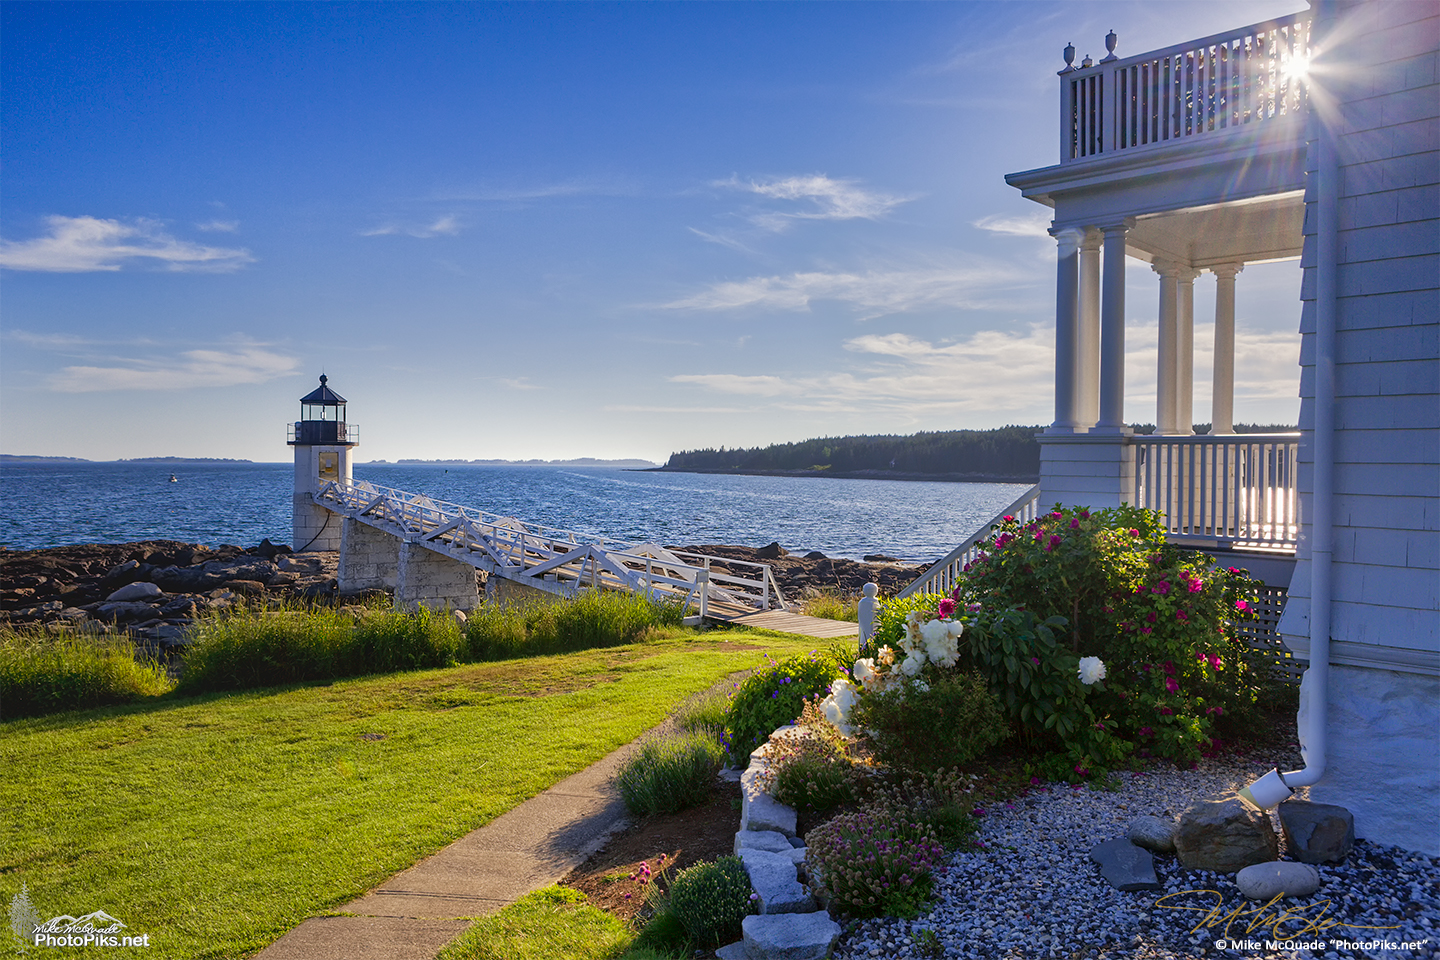 Marshall Point Light Station in Port Clyde, Maine